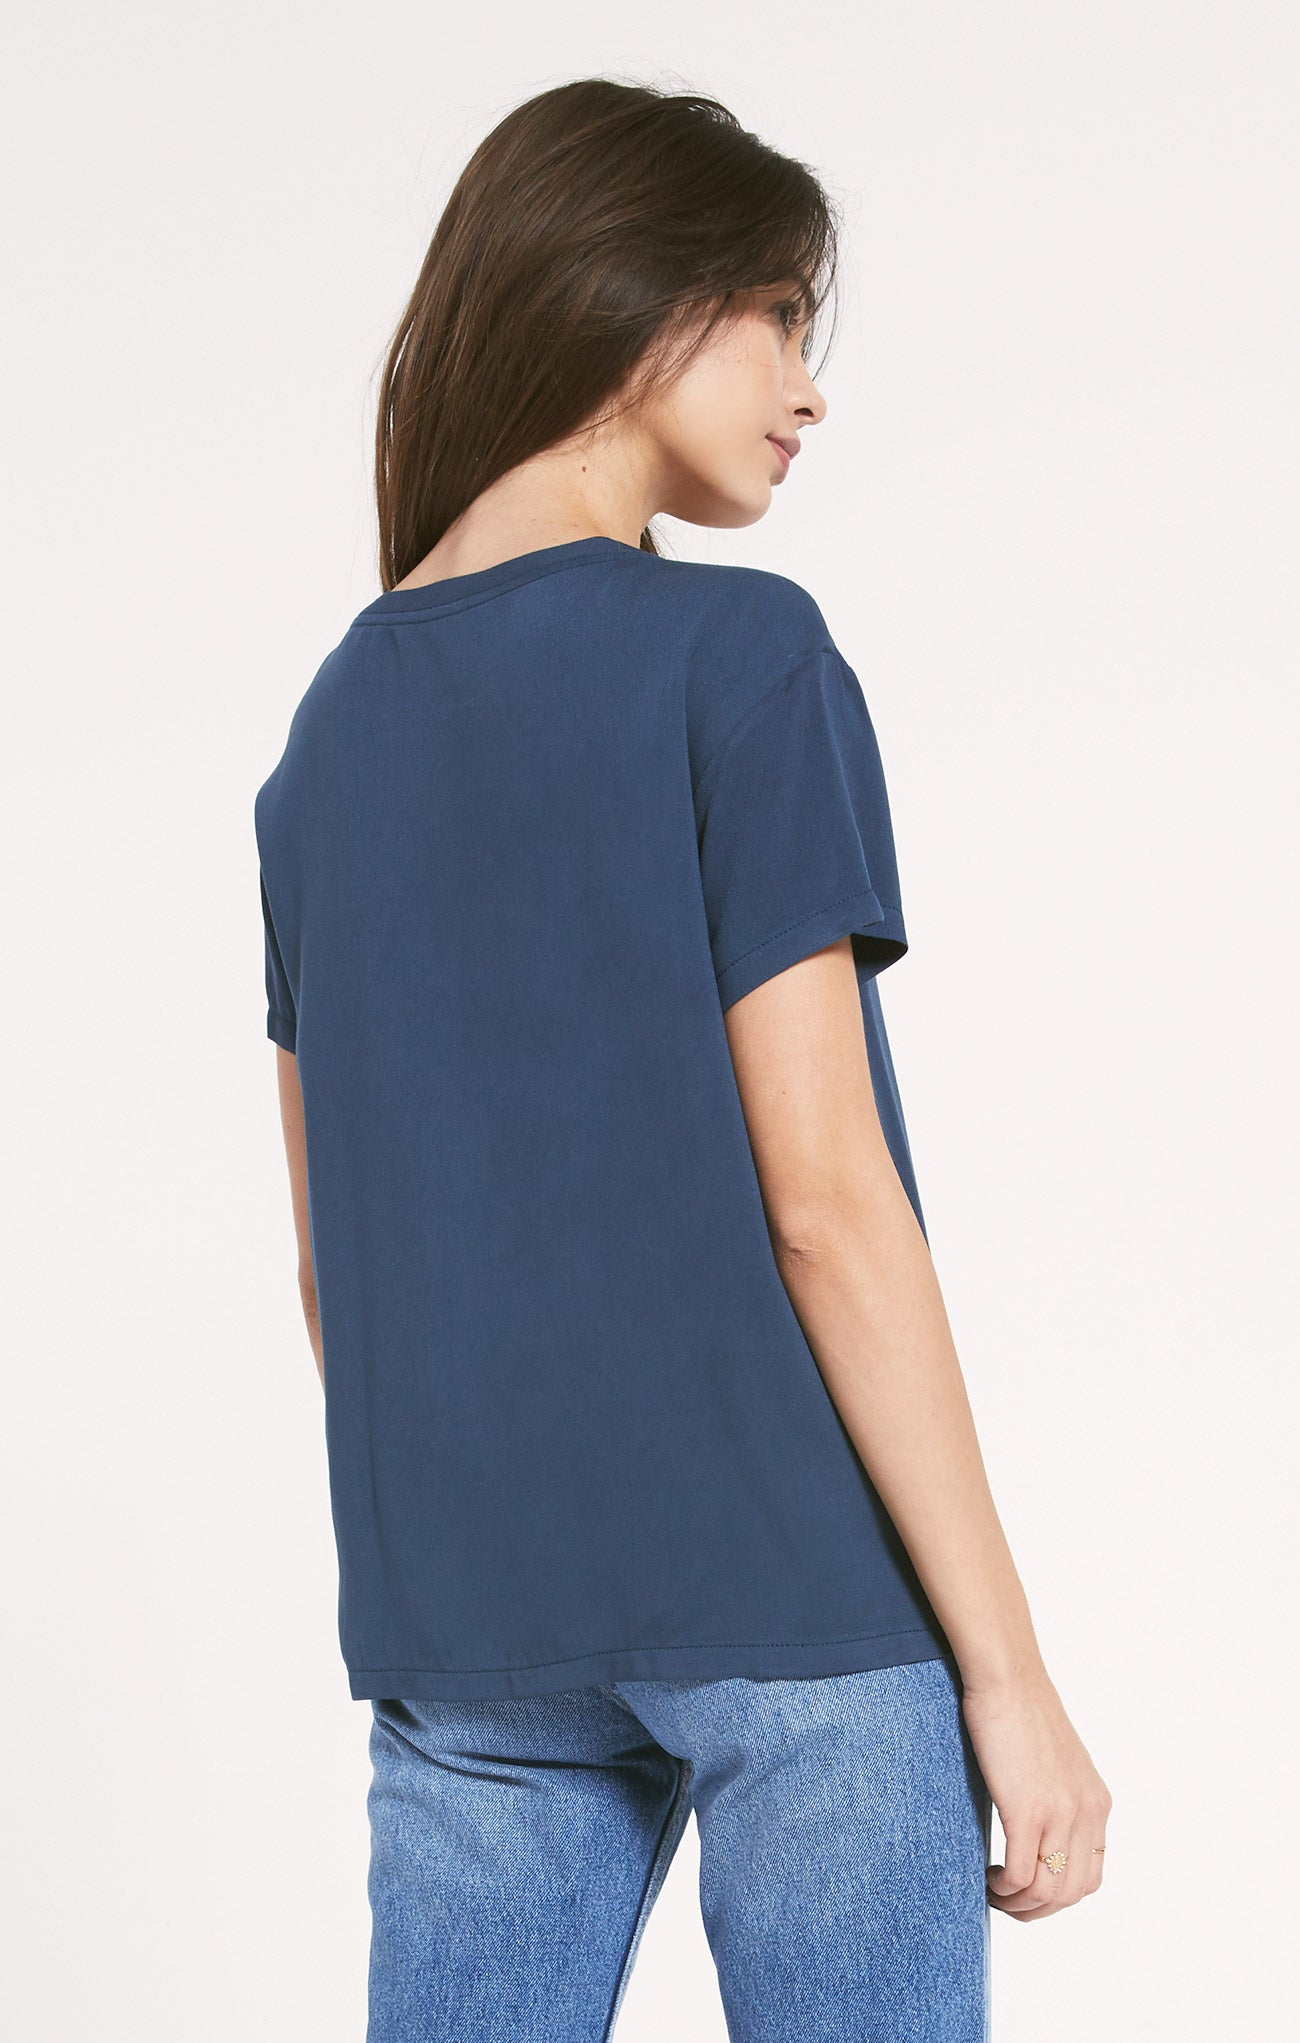 Tops Hagia V-Neck Tee by Rag Poets Hagia V-Neck Tee by Rag Poets